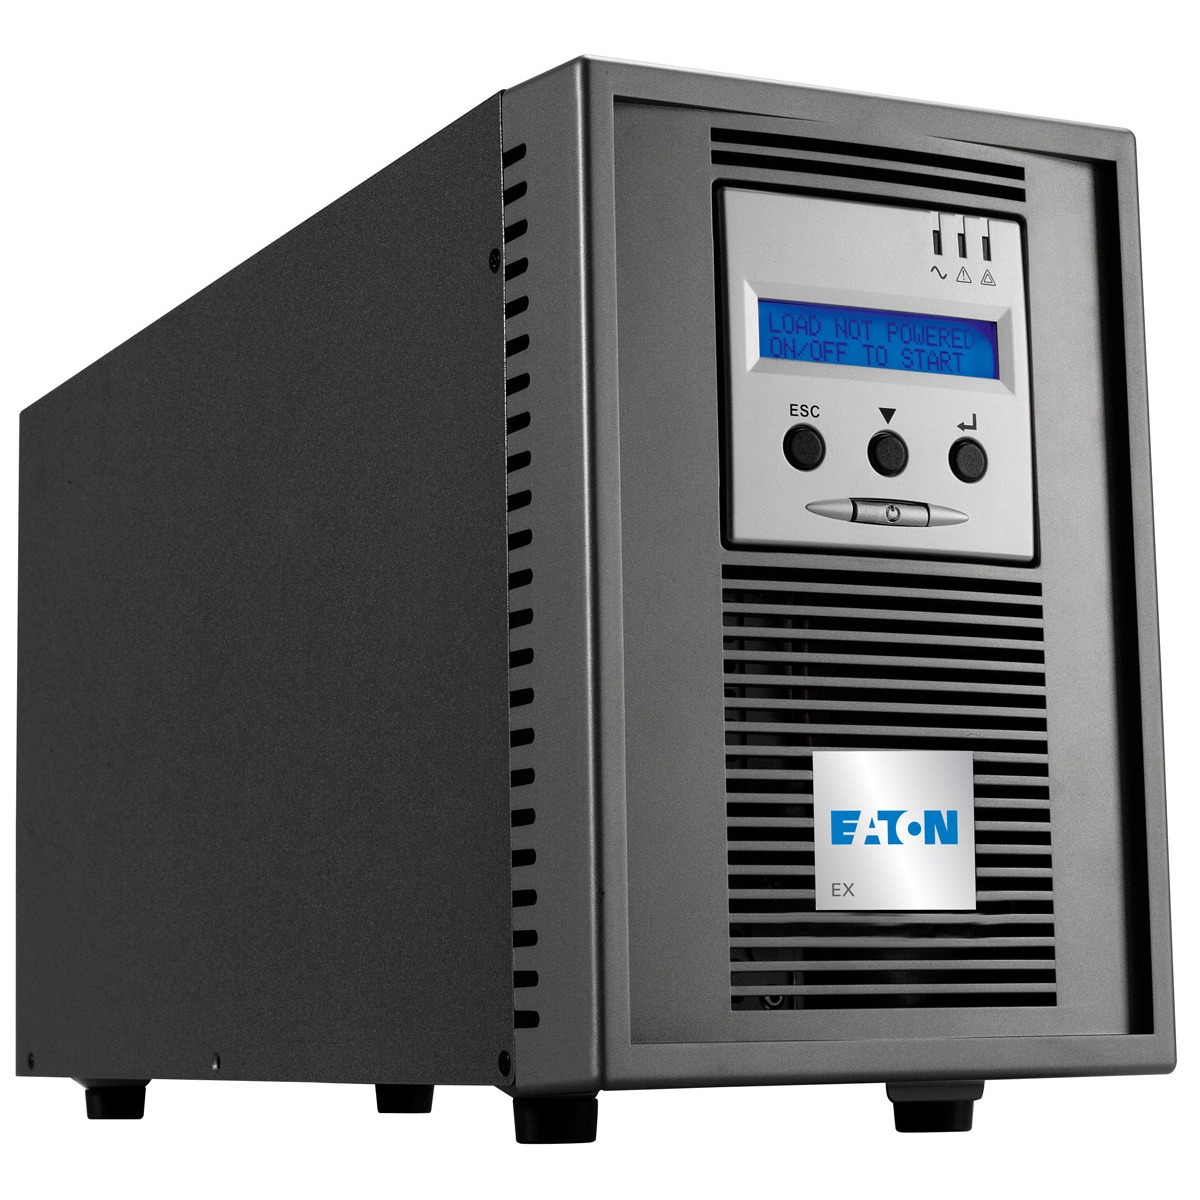 eaton ex 1500 ups manual